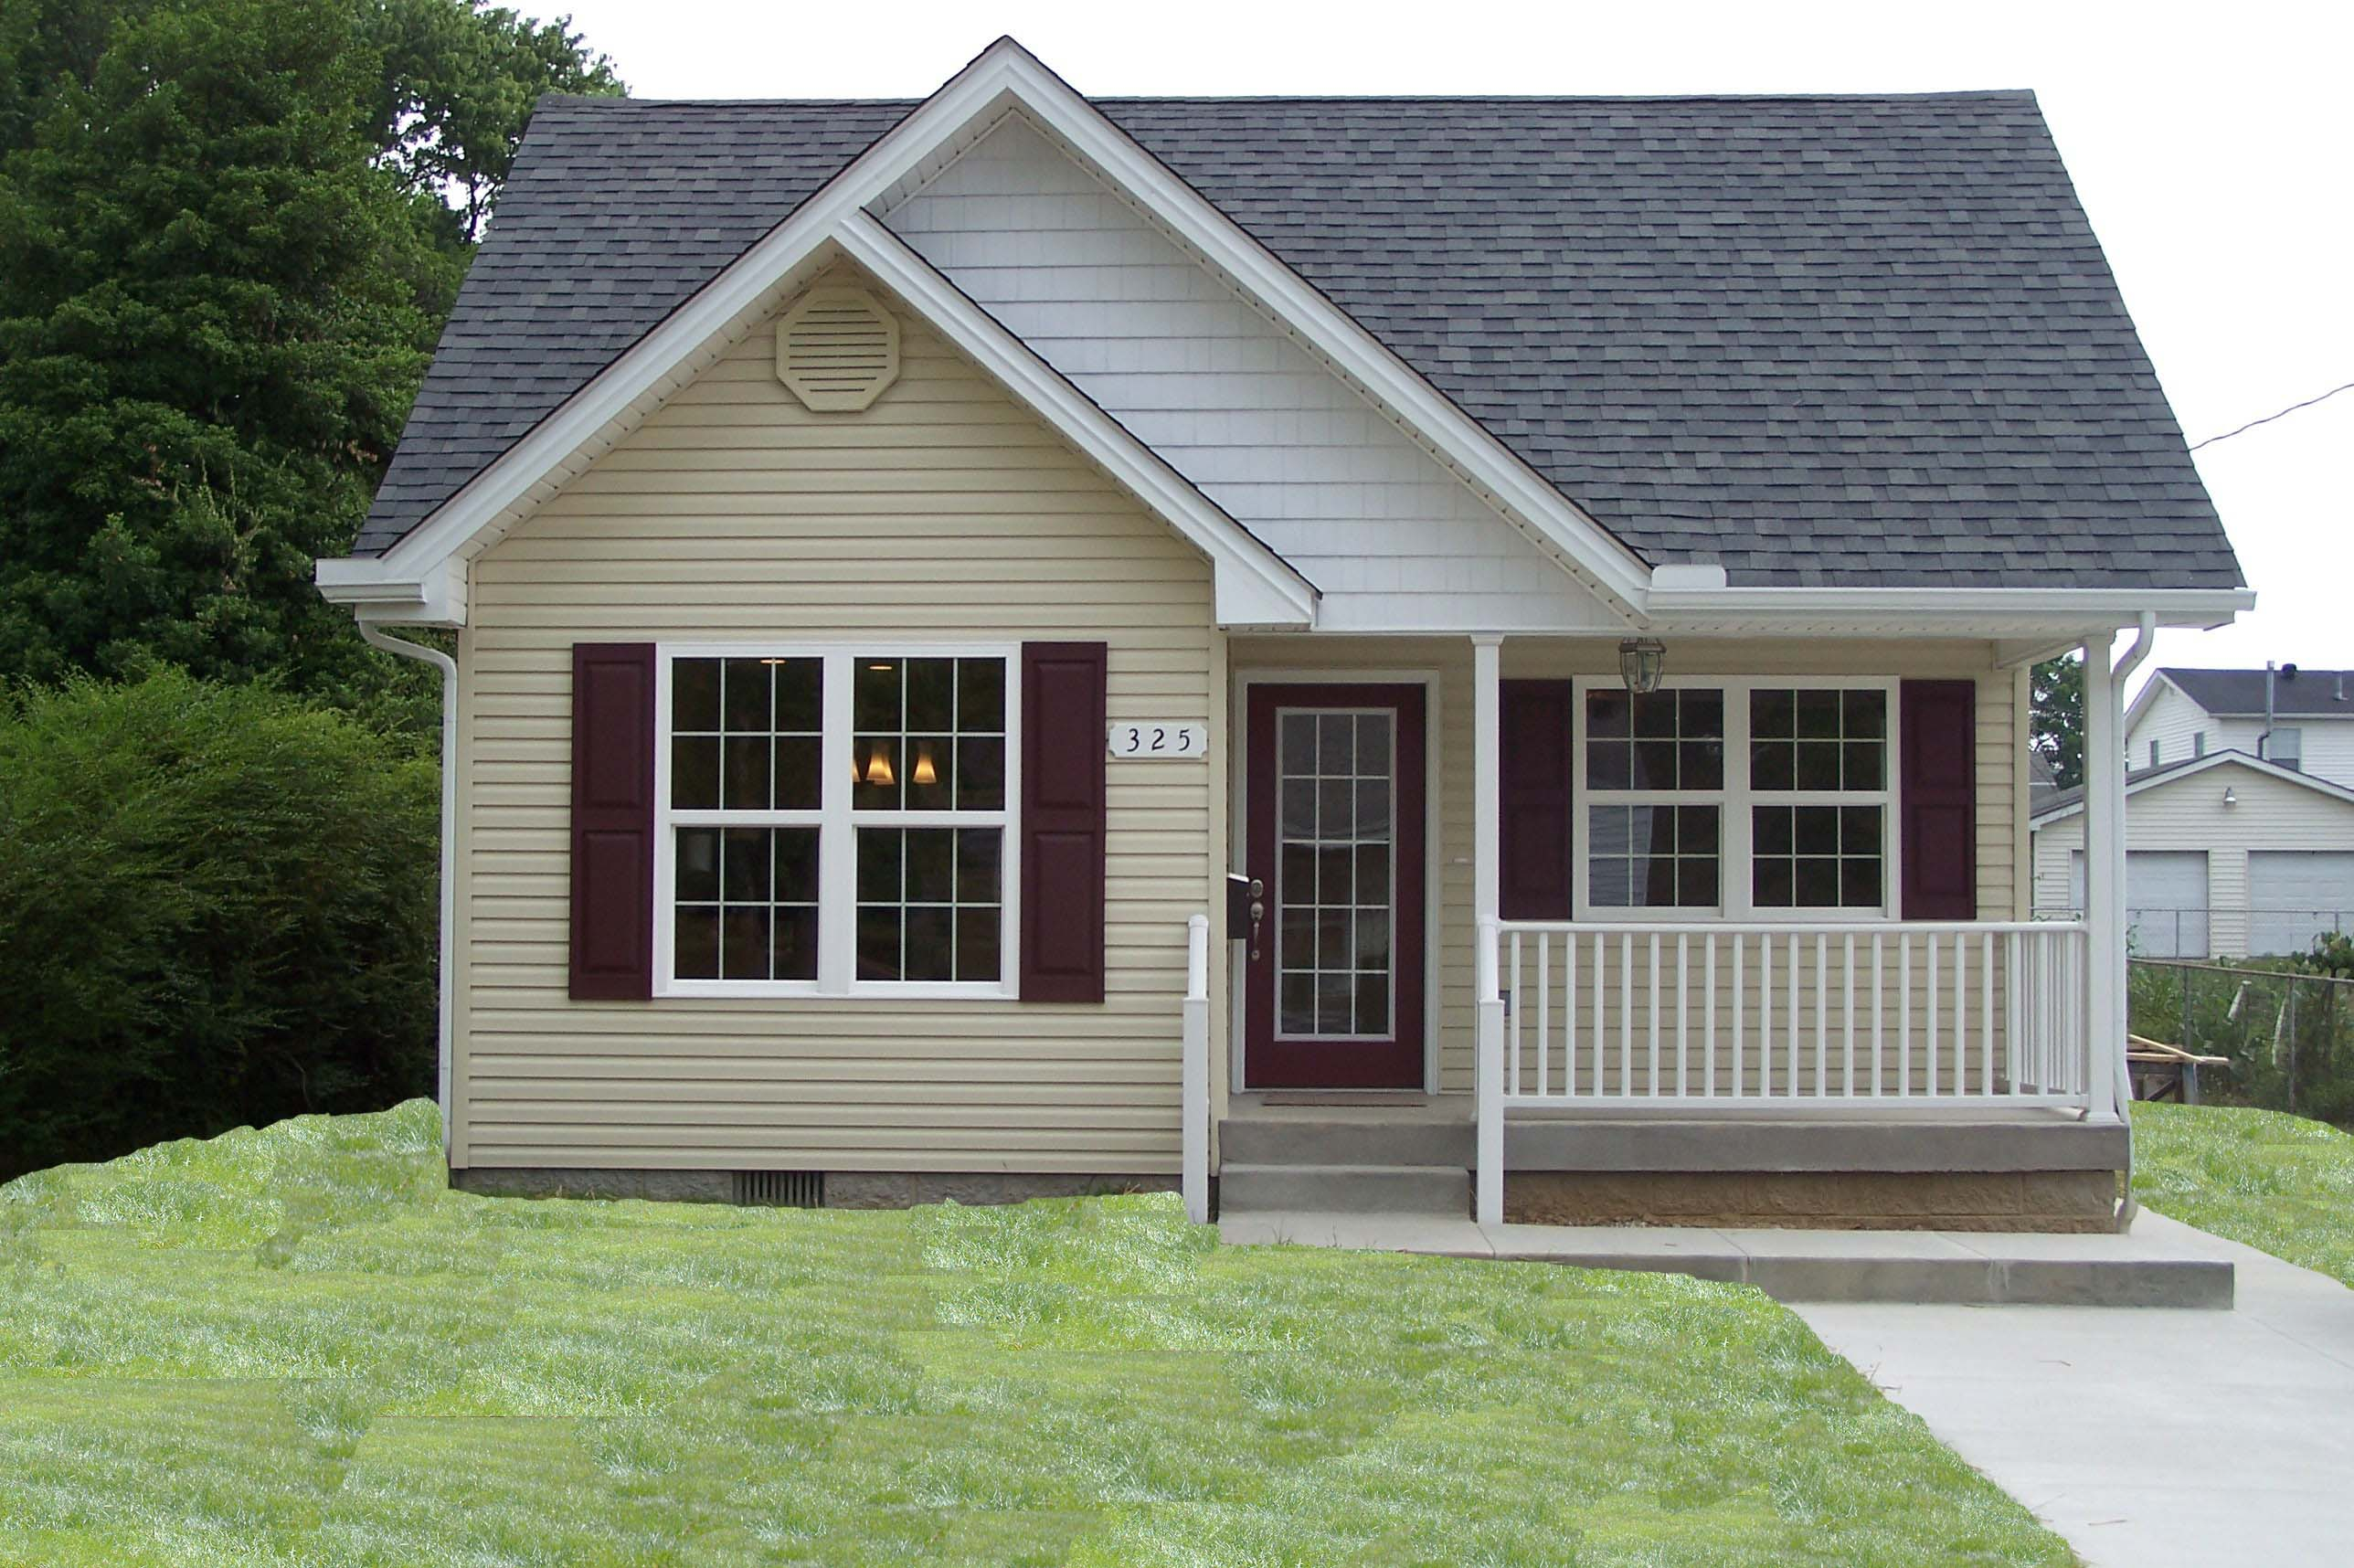 & Manufactured Homes: Highlights of 100 Written Blog Postings